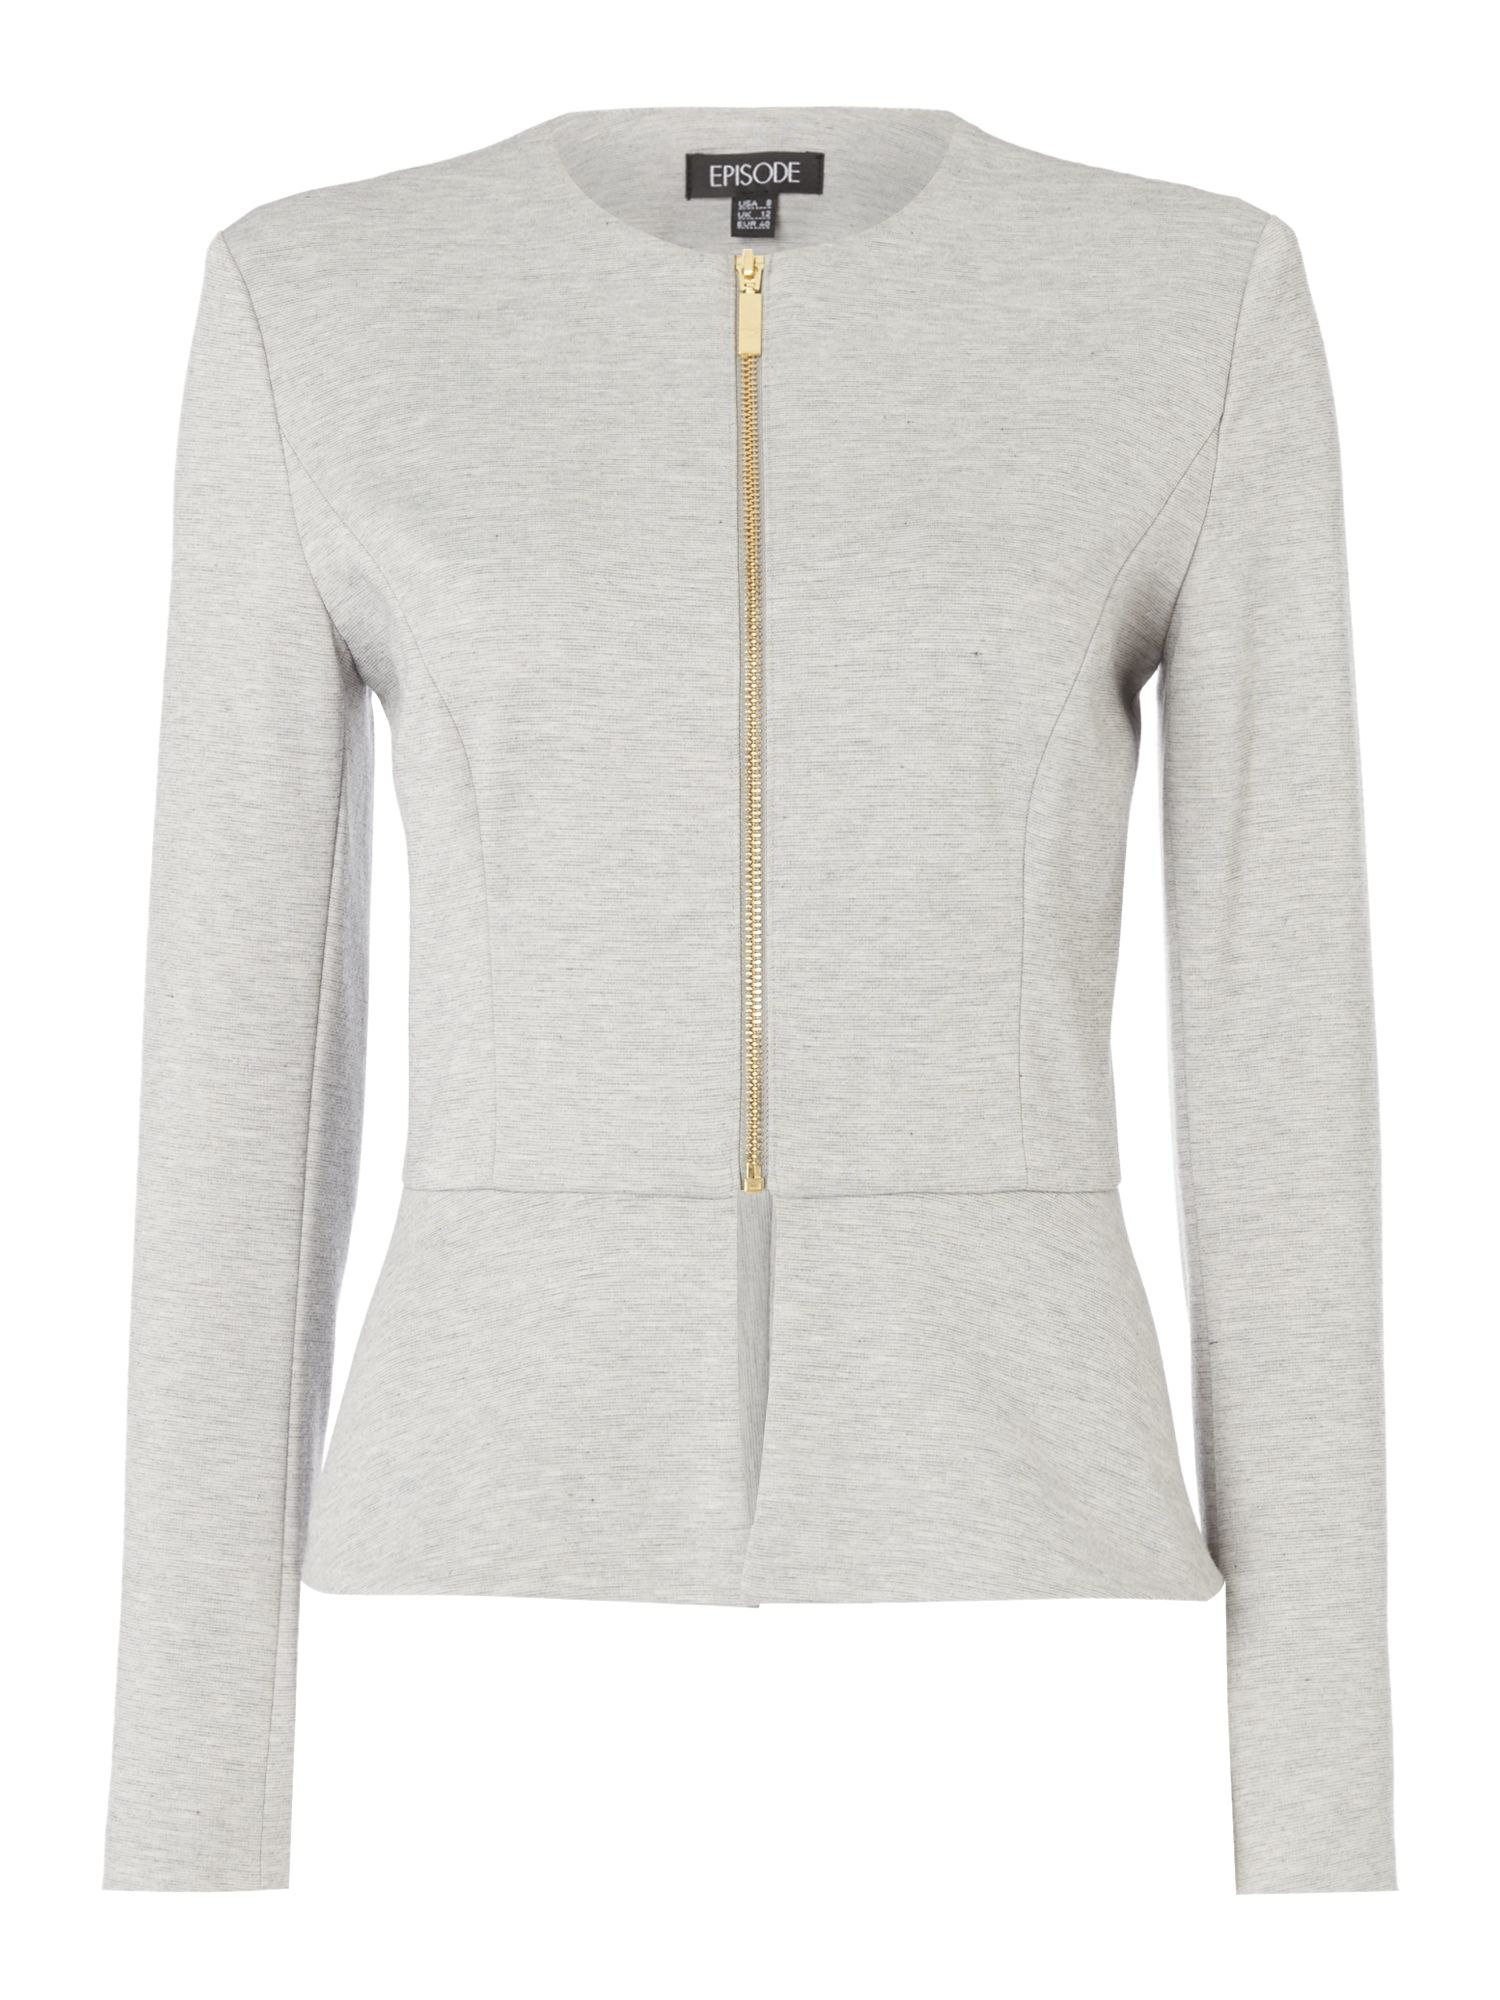 Episode Episode Peplum jersey jacket, Grey Marl